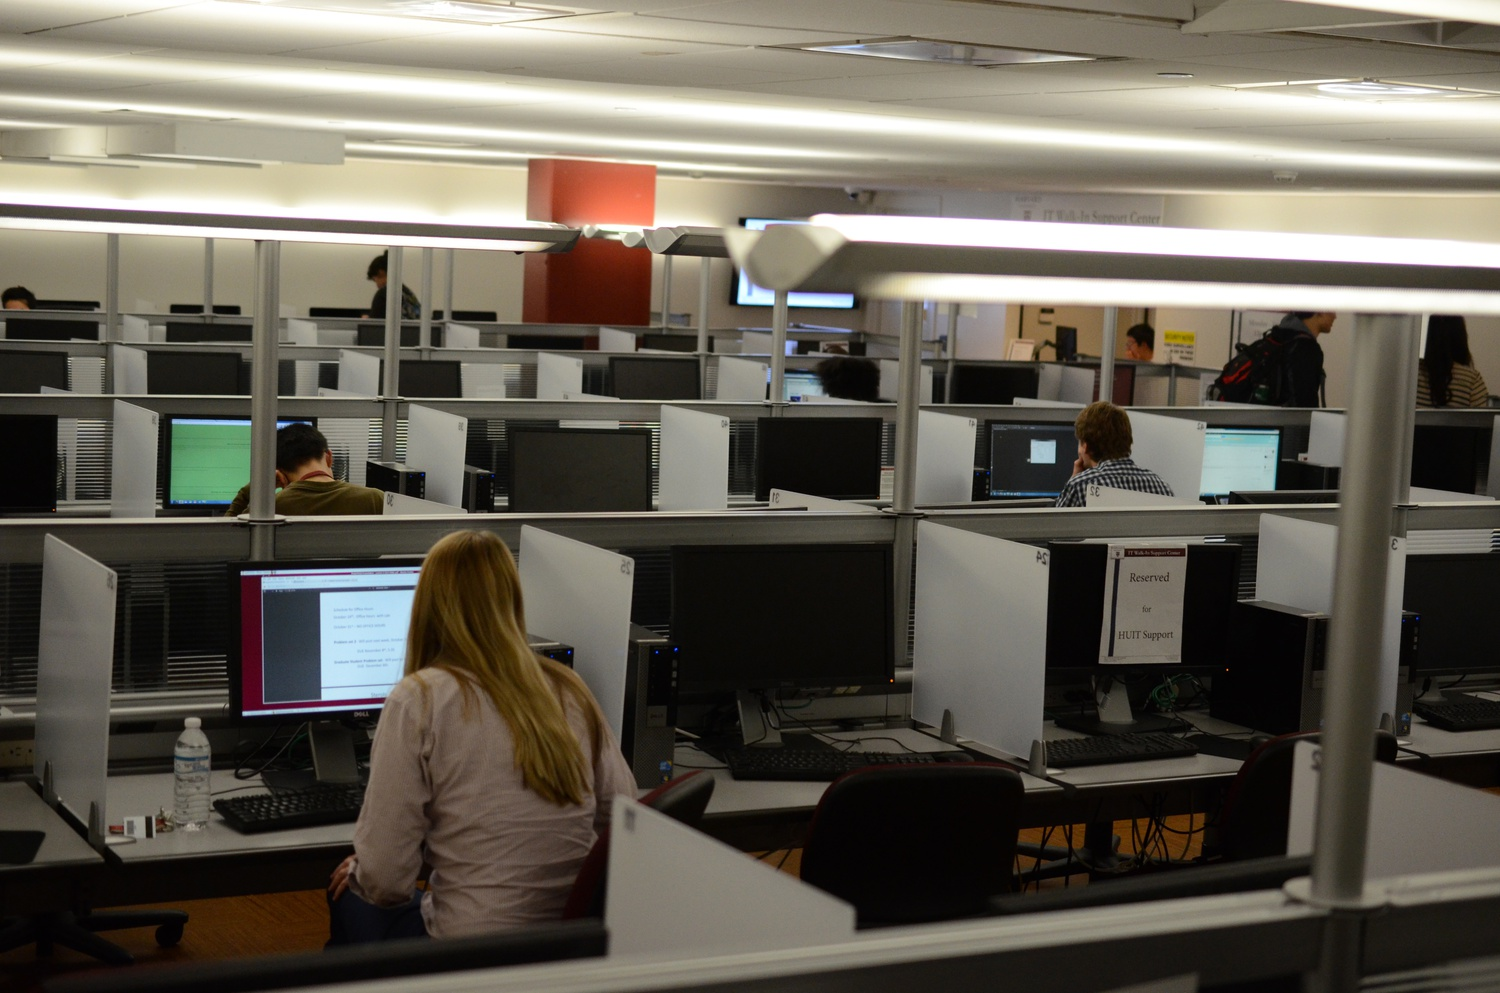 The Science Center computer lab is open to anyone on campus who has an HUID.